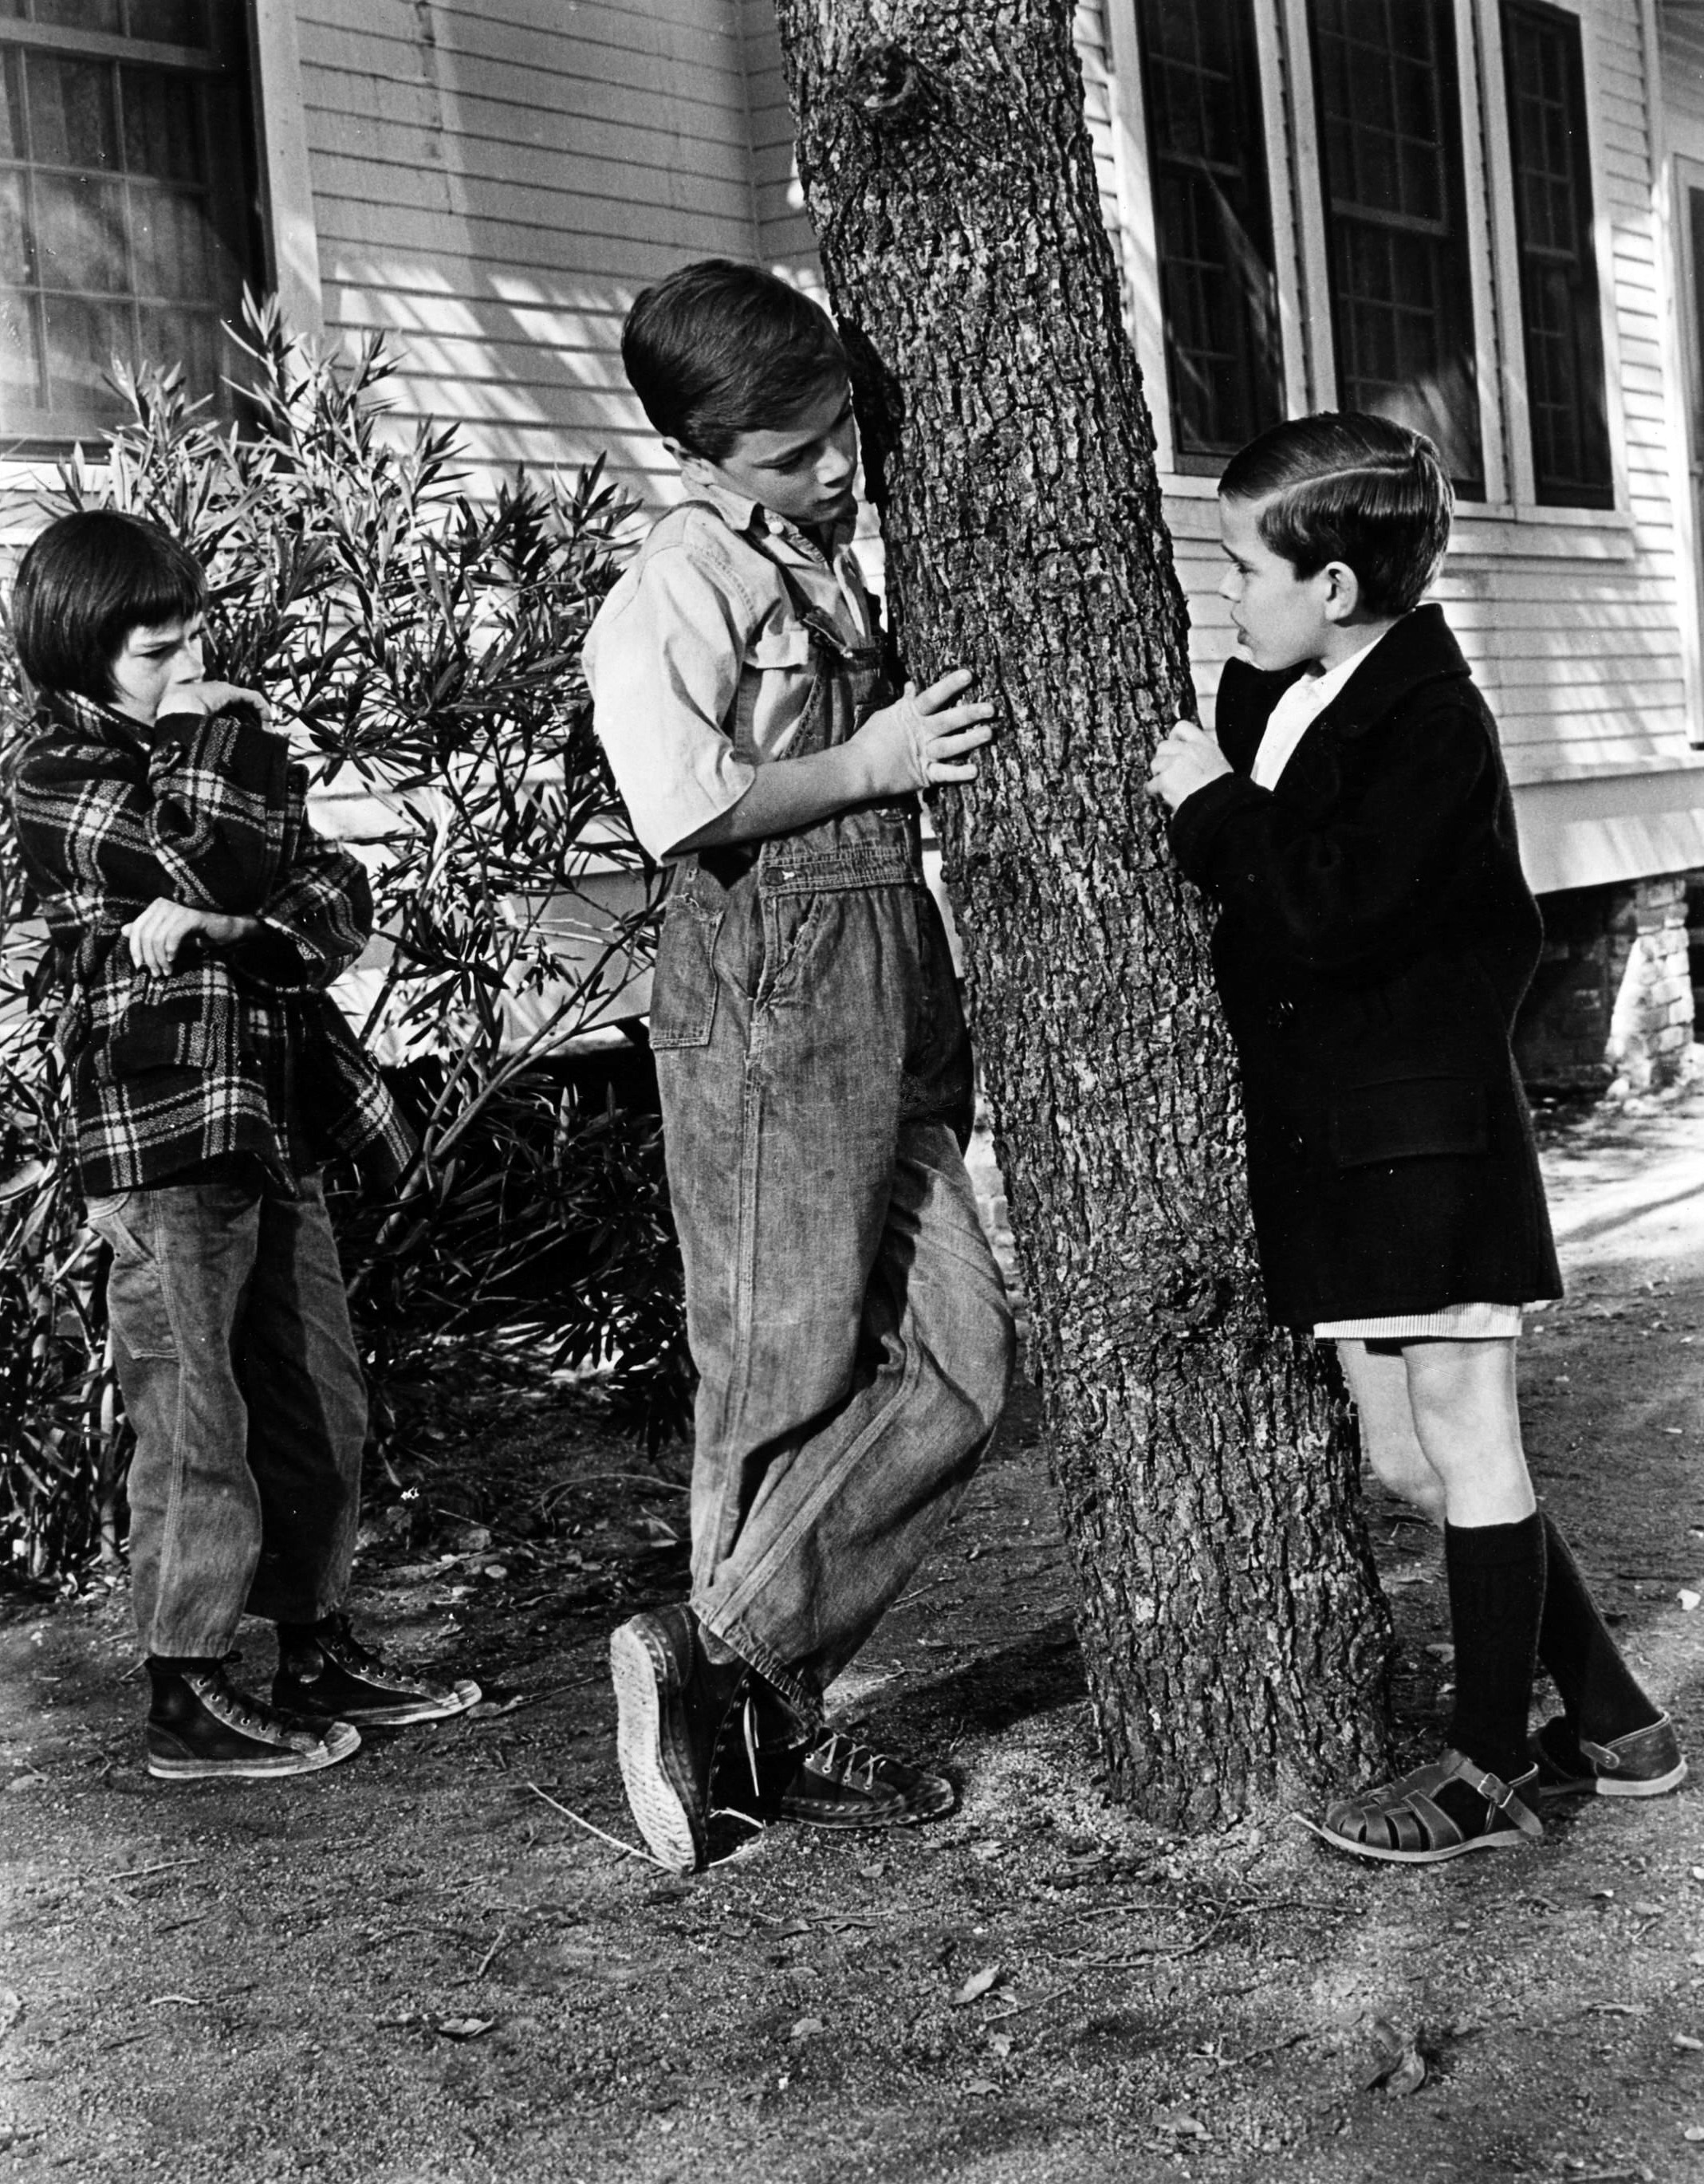 To kill a mockingbird relationship between atticus and scout essay